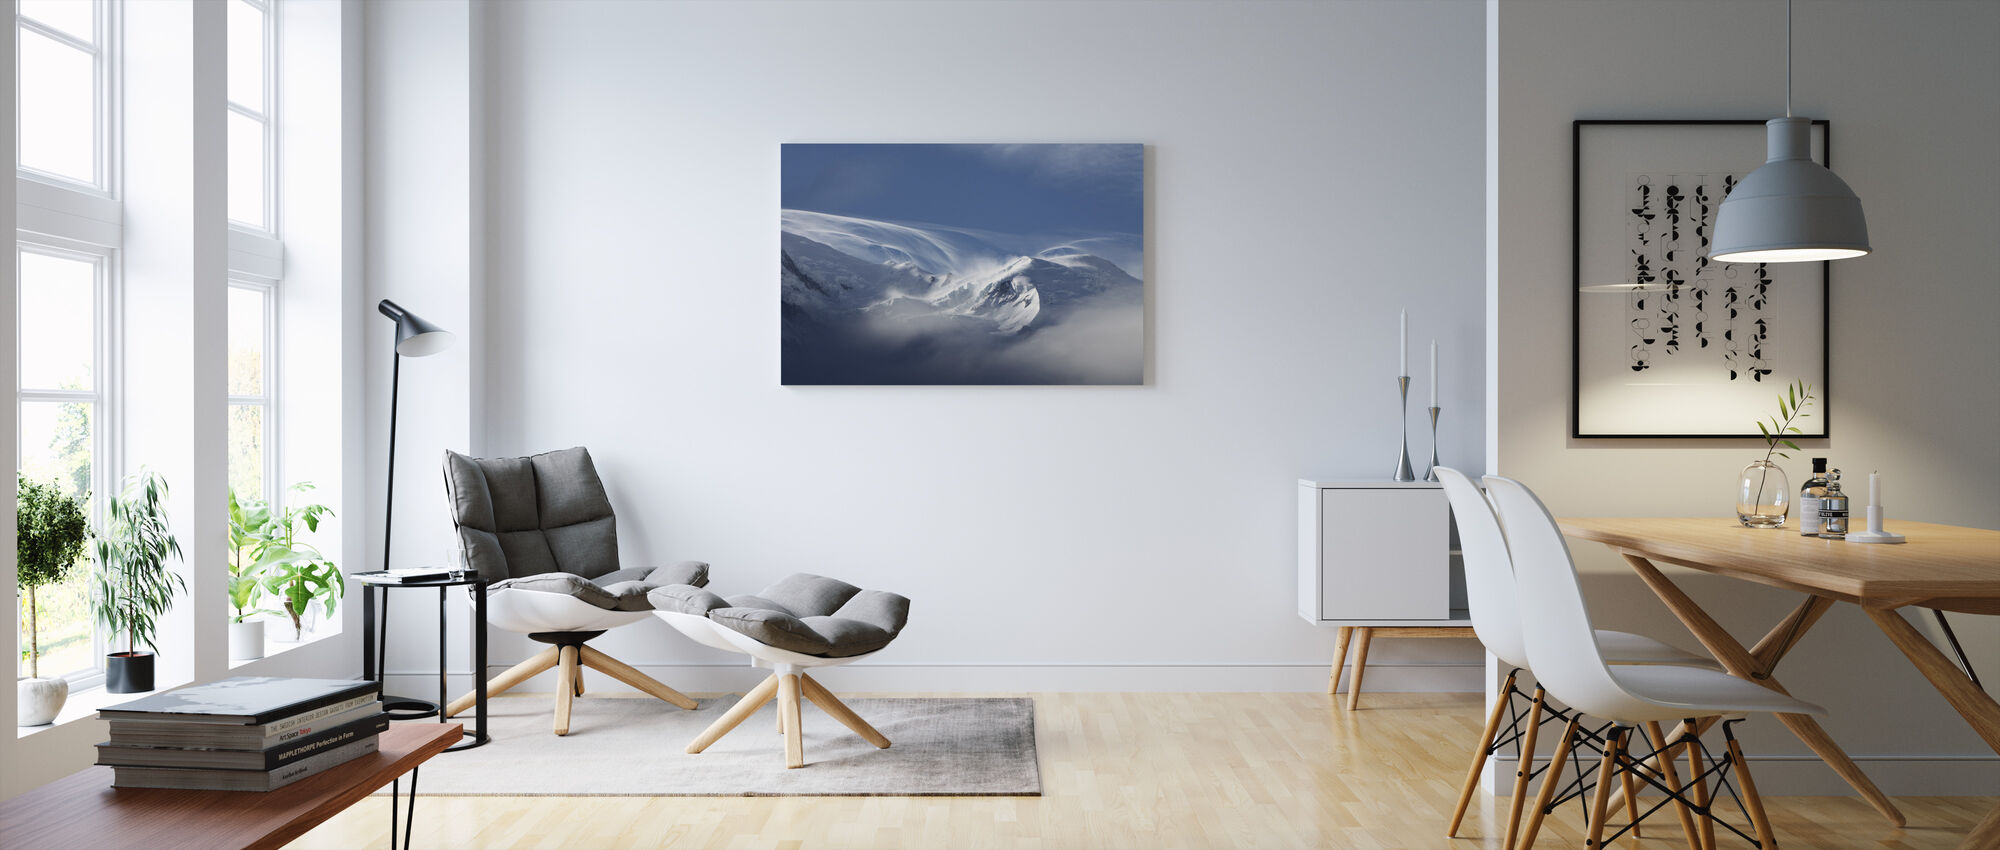 Winter Snow Mountain - Canvas print - Living Room